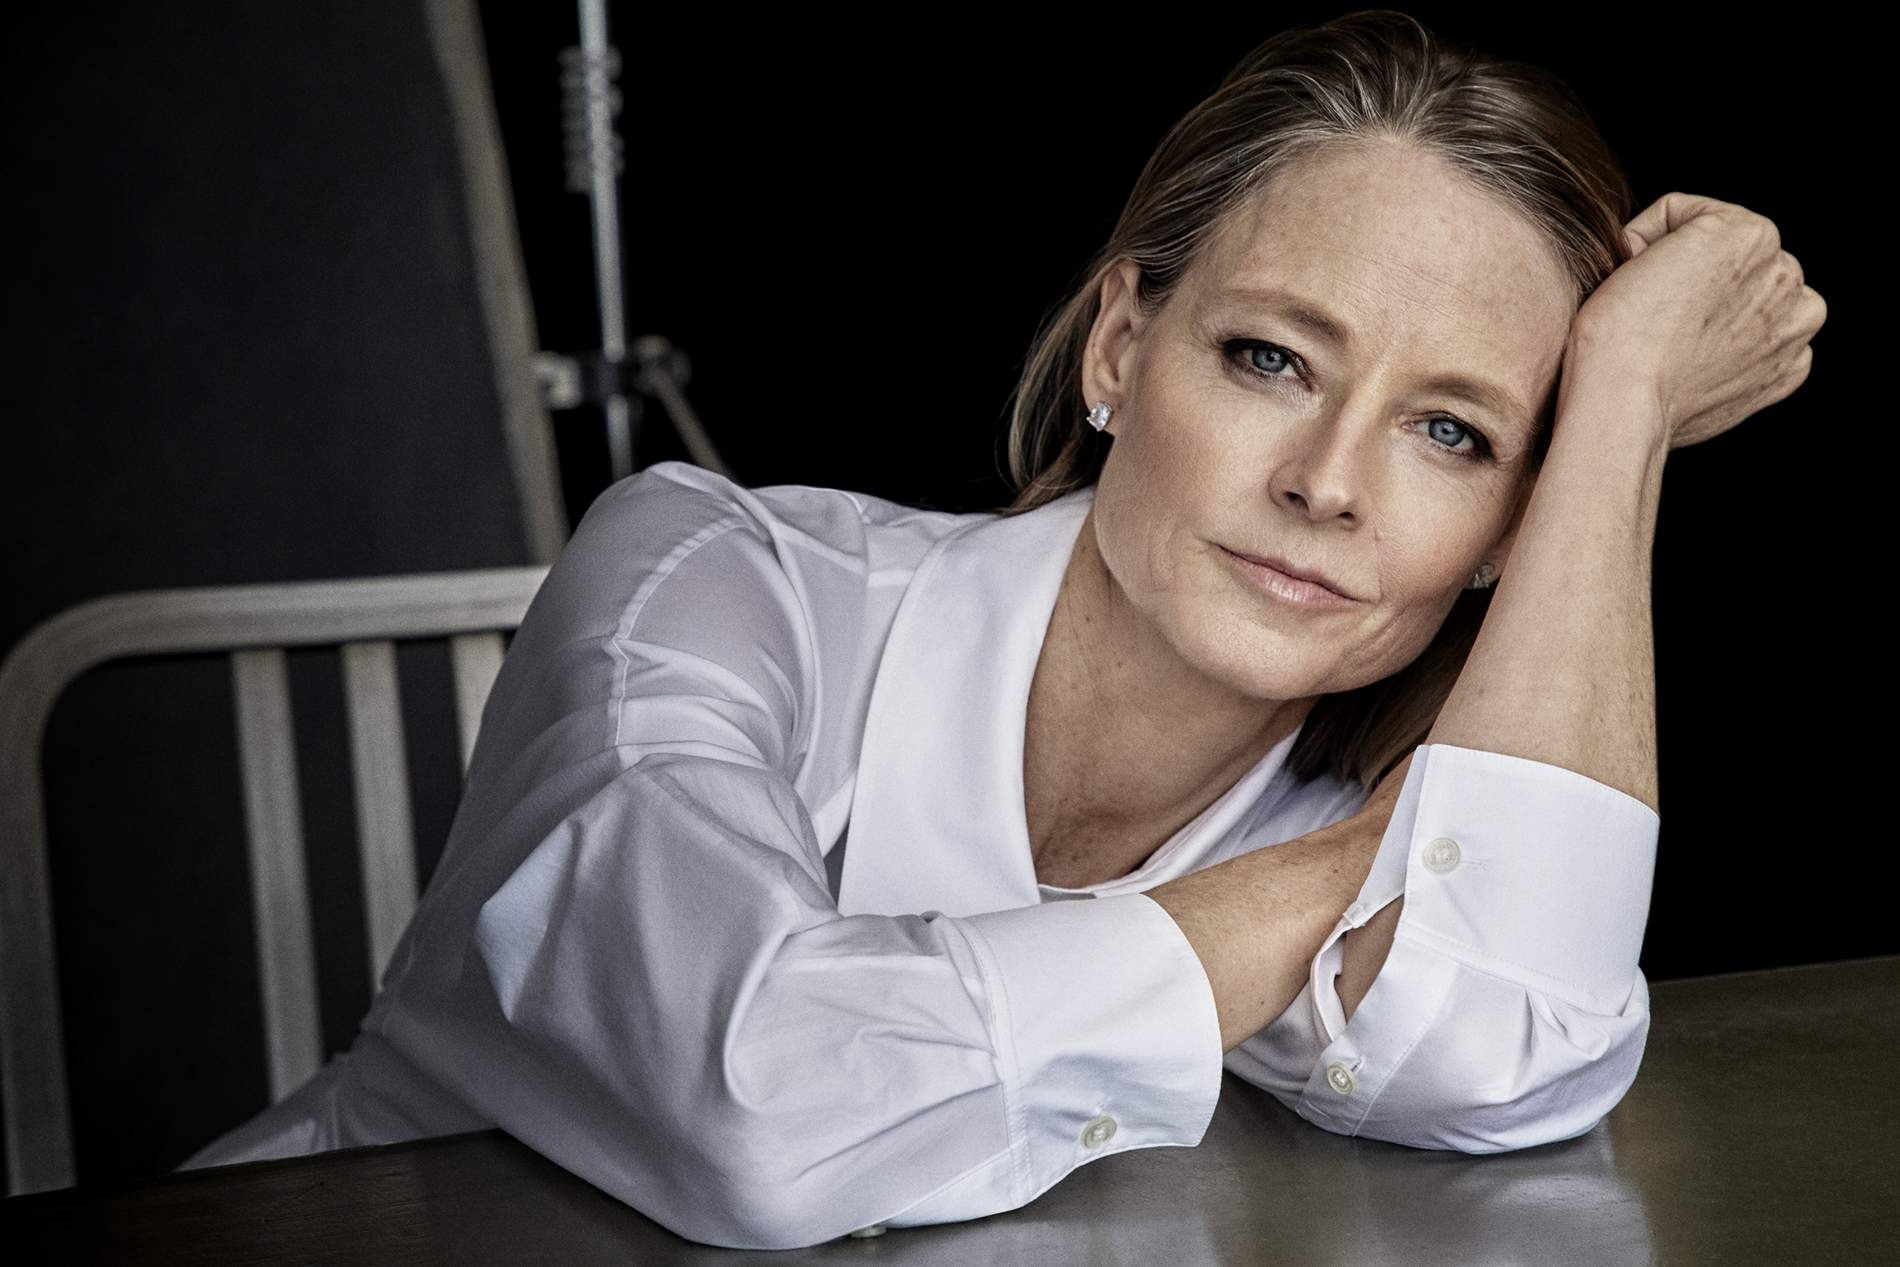 jodie-foster-age-height-weight-body measurement